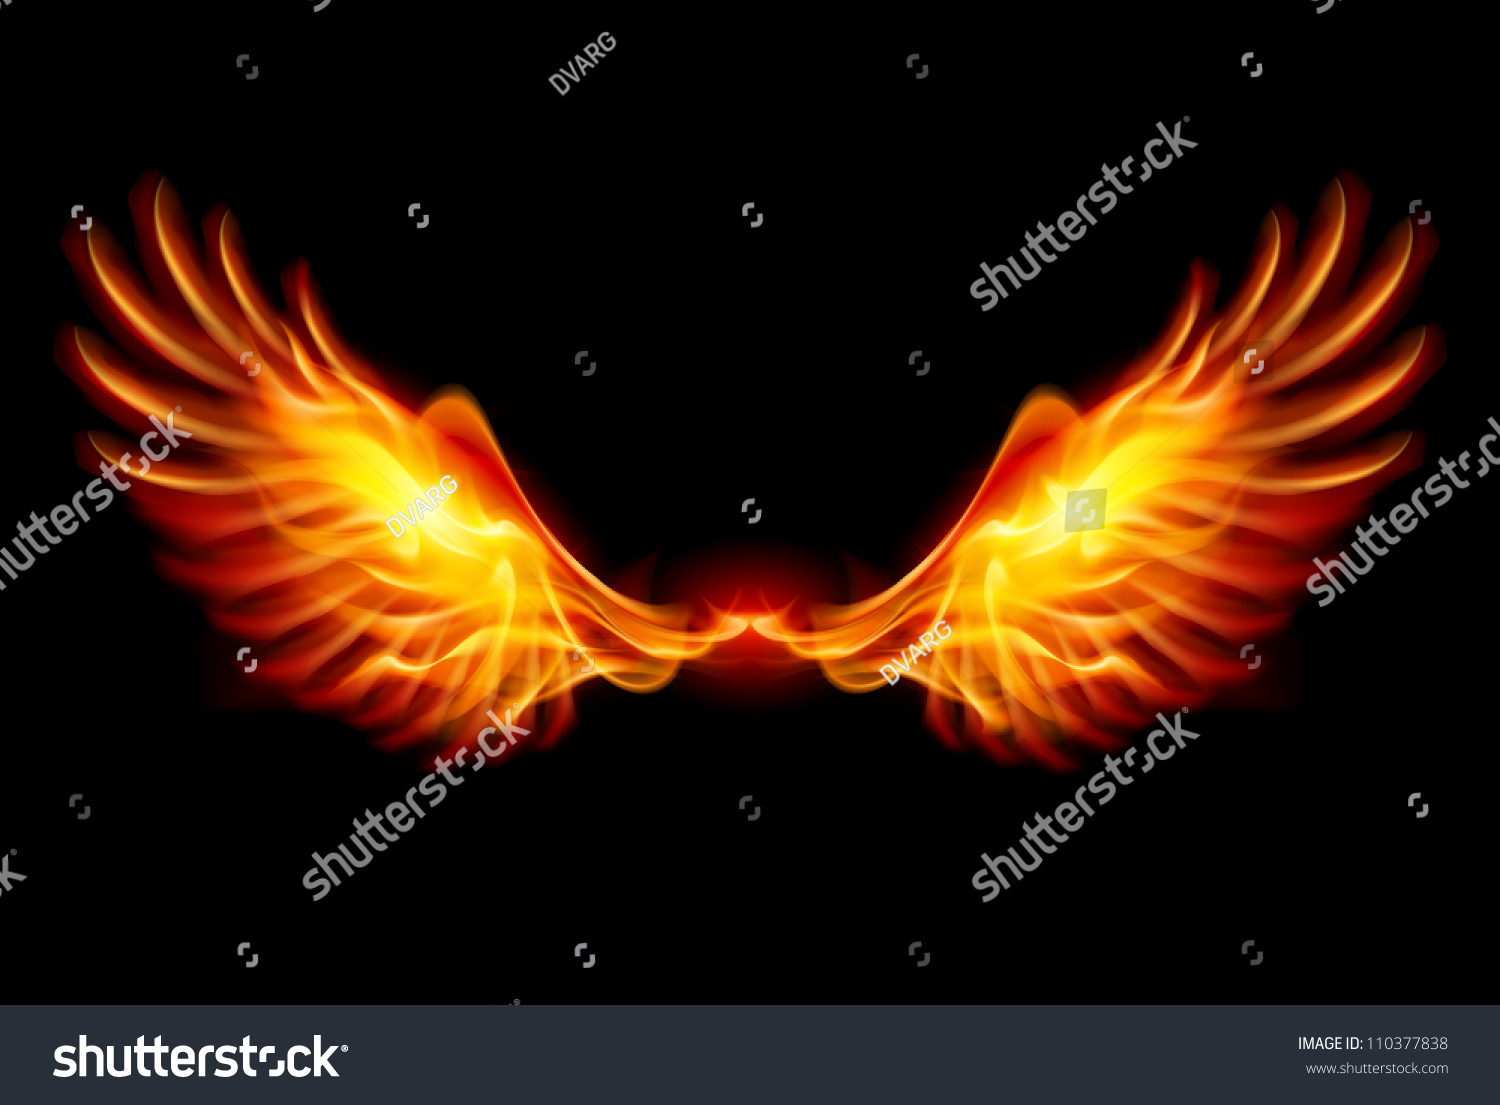 All Cars Symbols Wallpaper Wings Flame Fire Illustration On Black Stock Vector